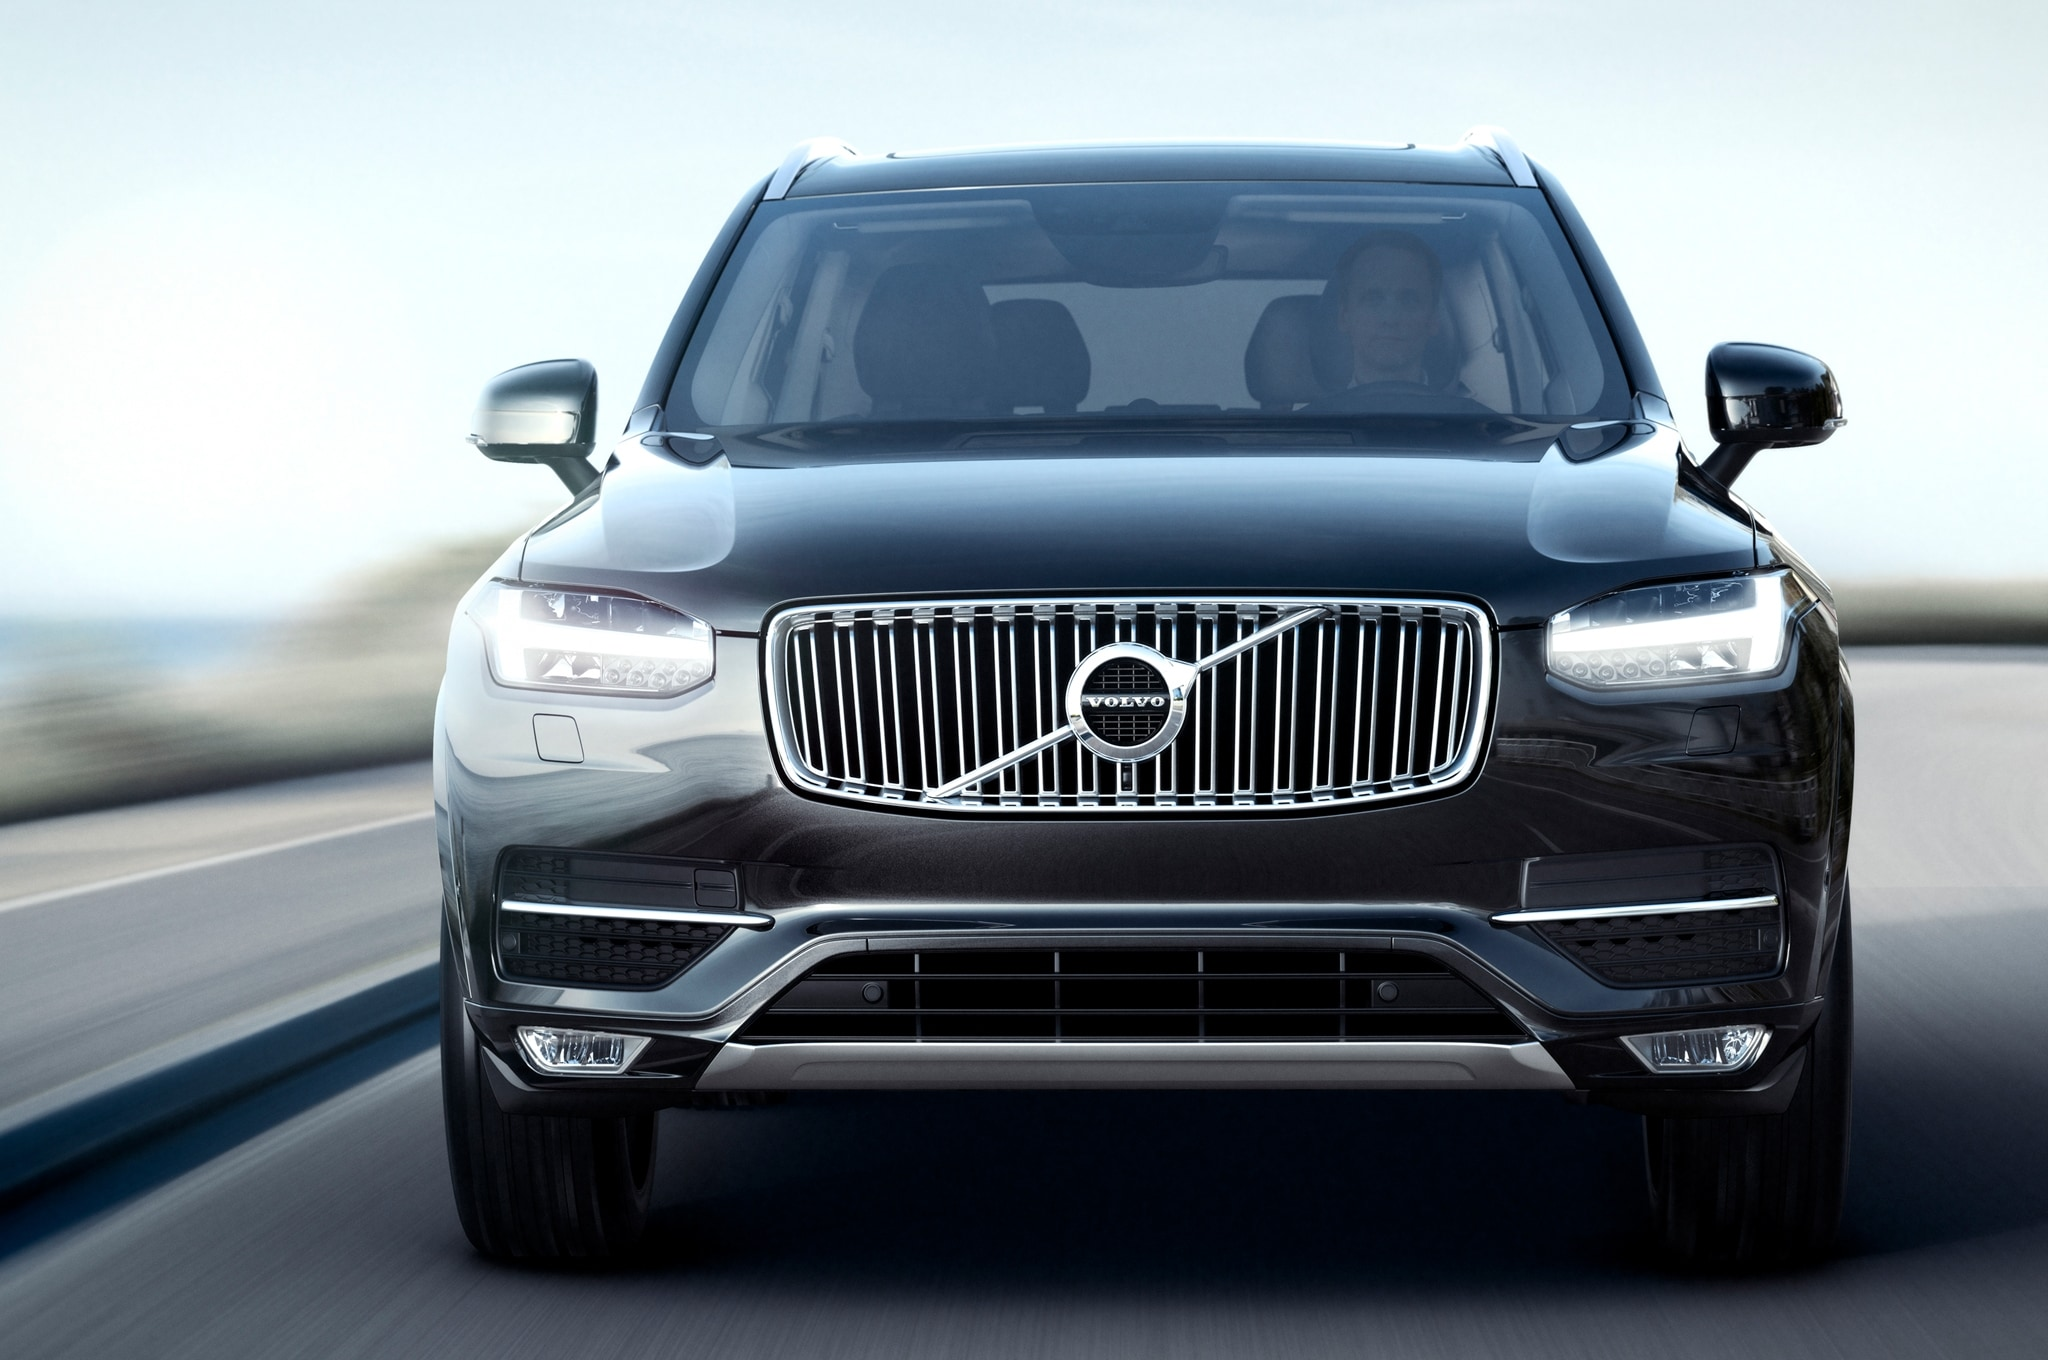 Xc90 information and specifications